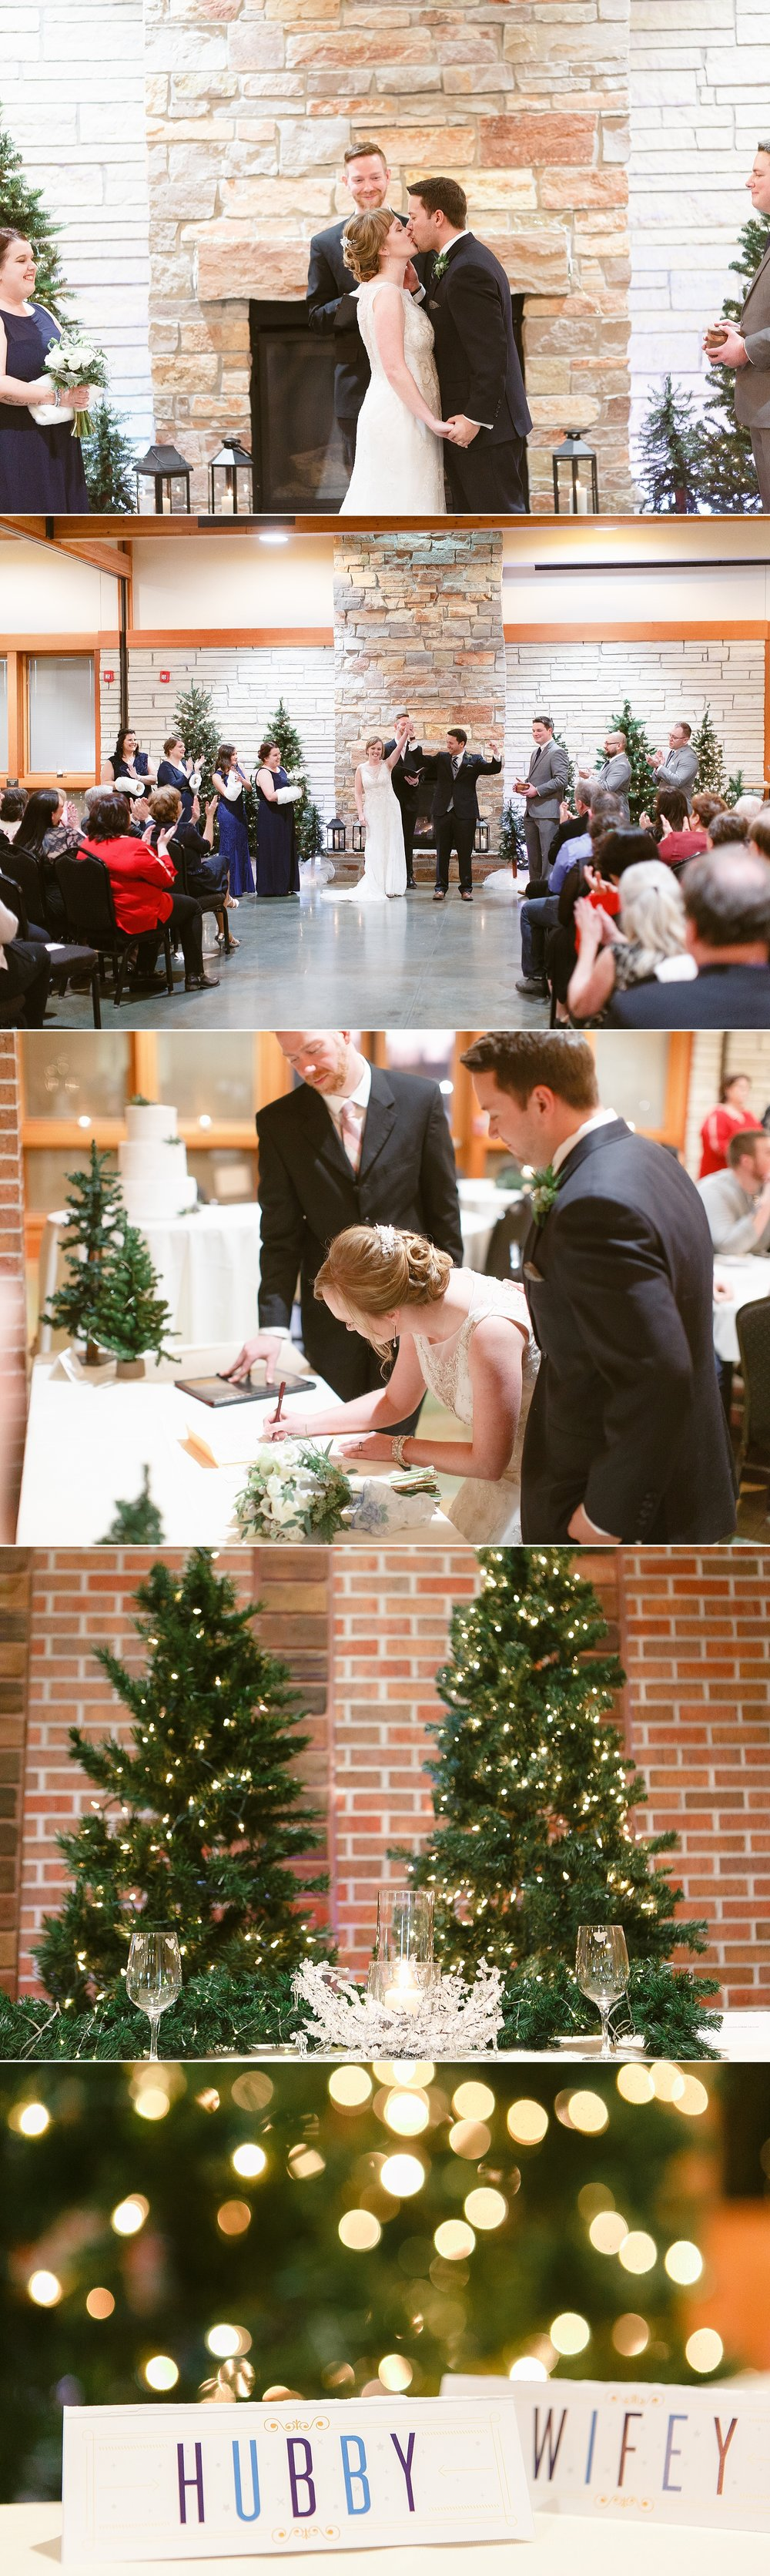 Midwest fine art wedding Des Moines Fall Wedding photographer_0644.jpg